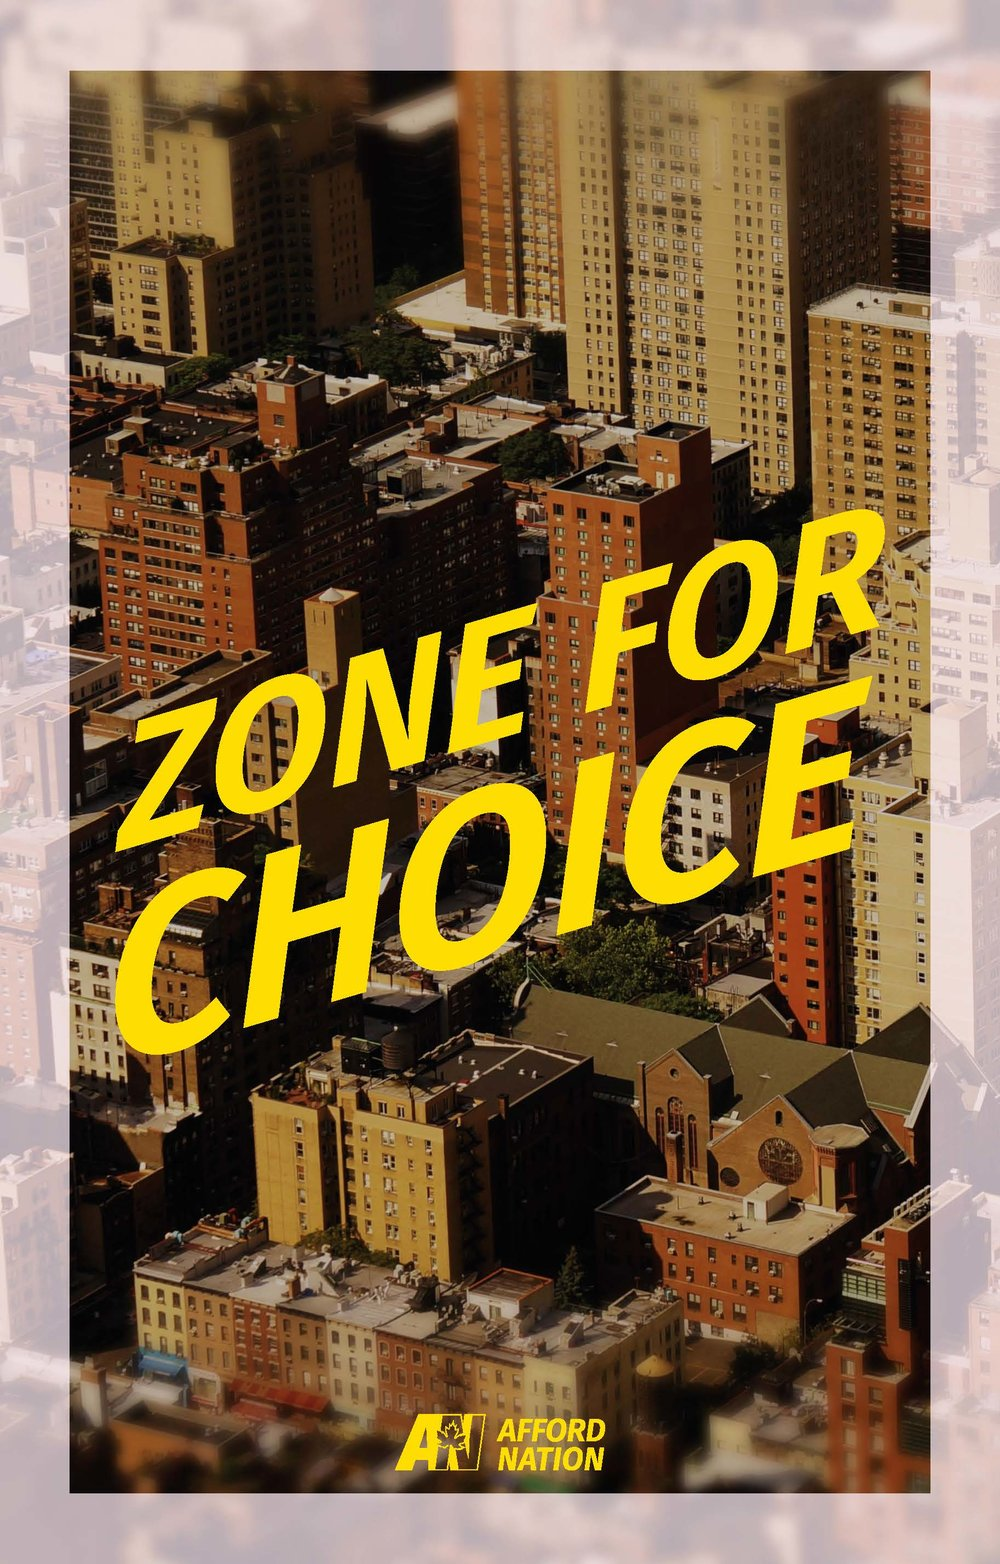 Zone for choice